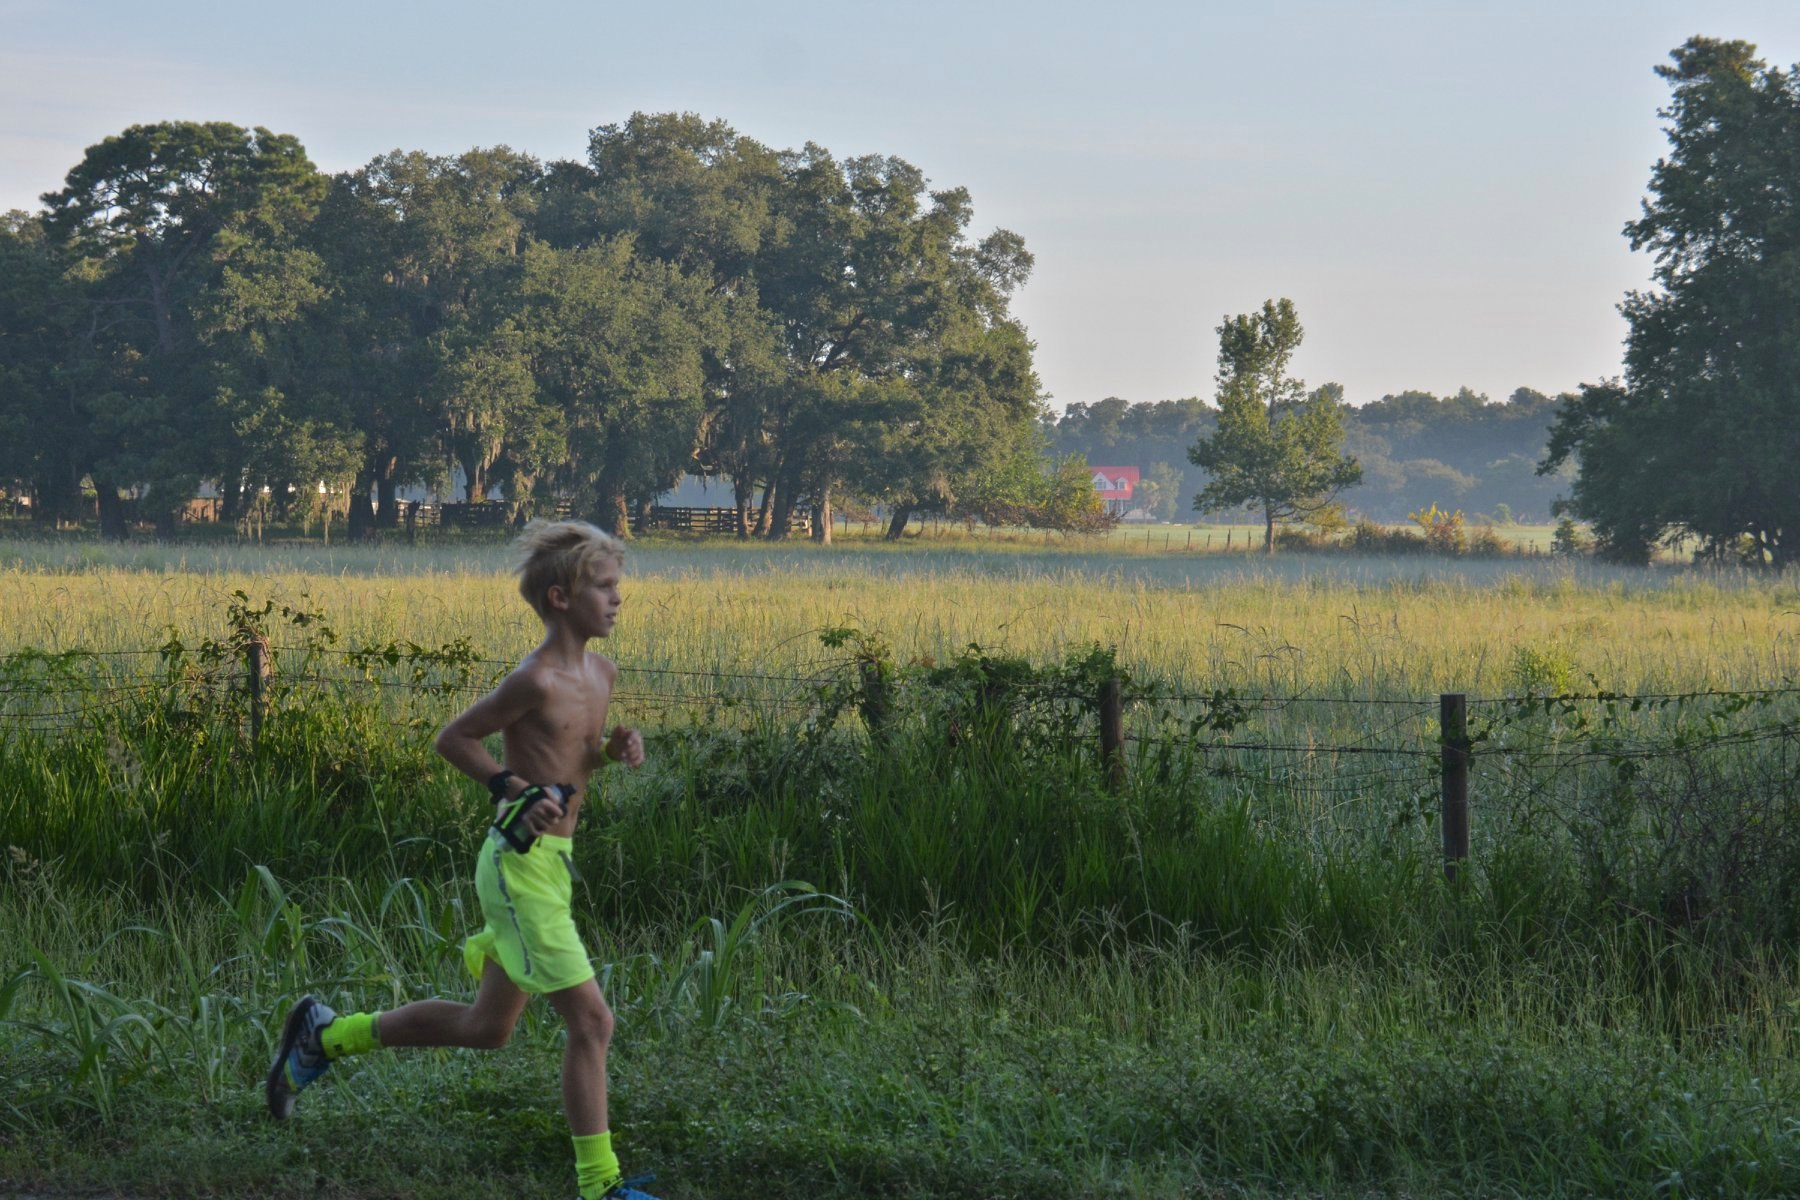 12 year old Gavin Moore wins the 2020 Cremator Ultra 50-Mile Endurance Race in Beaufort, SC